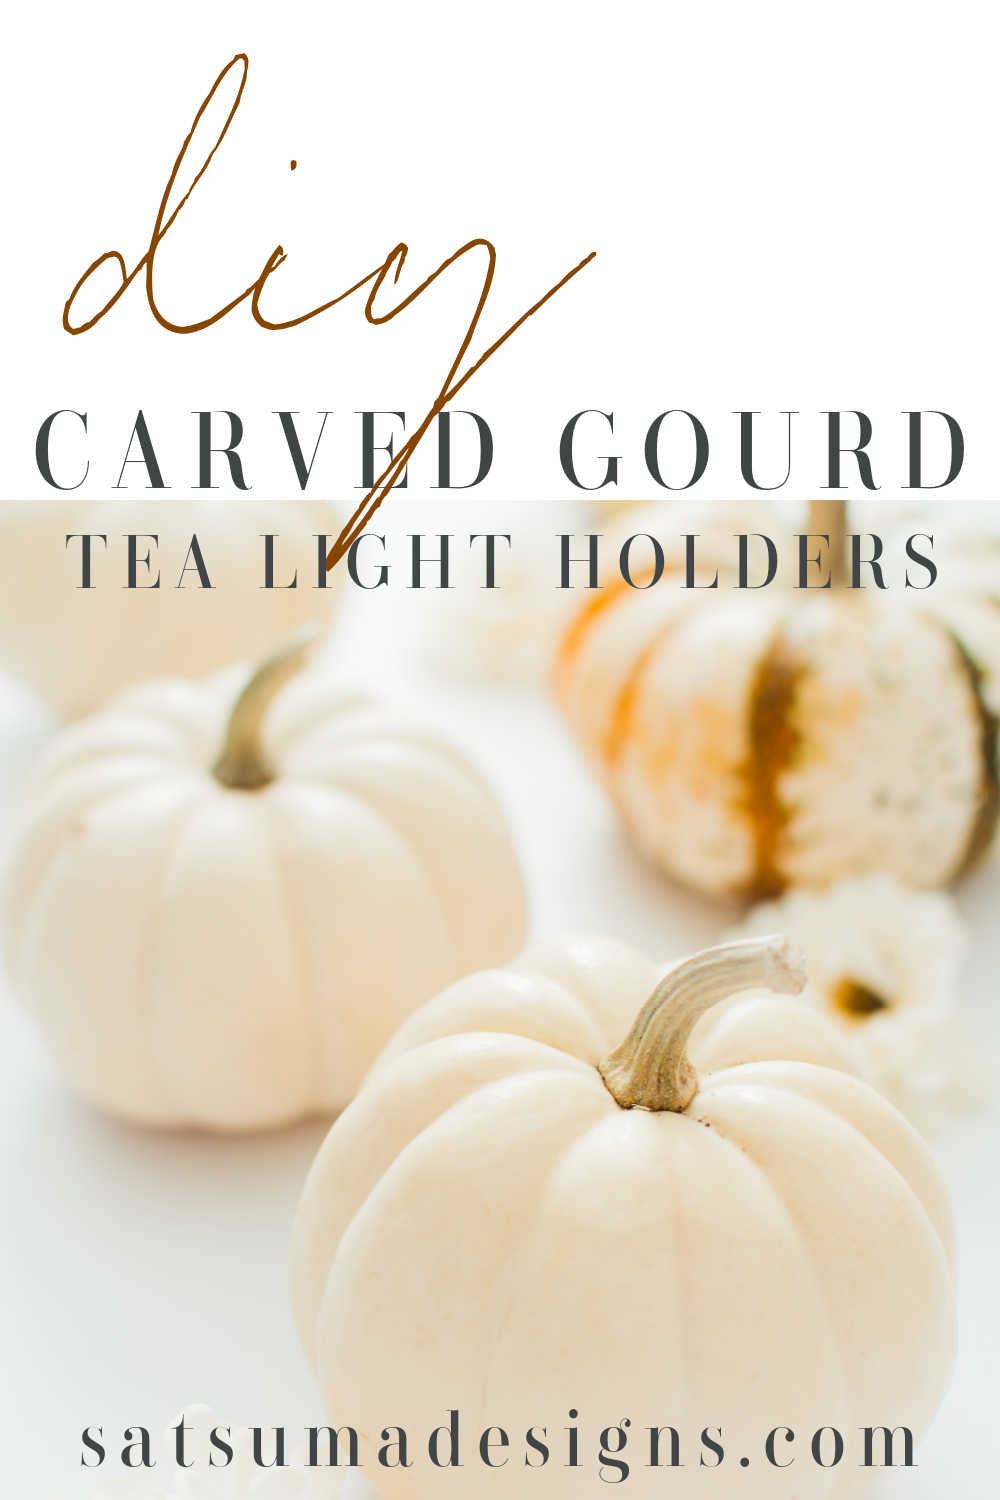 DIY carved gourd tea light holders. Try these super easy candle holders for autumn decorating. Super fun Halloween season craft for kids too! #gourds #pumpkins #tealightcrafts